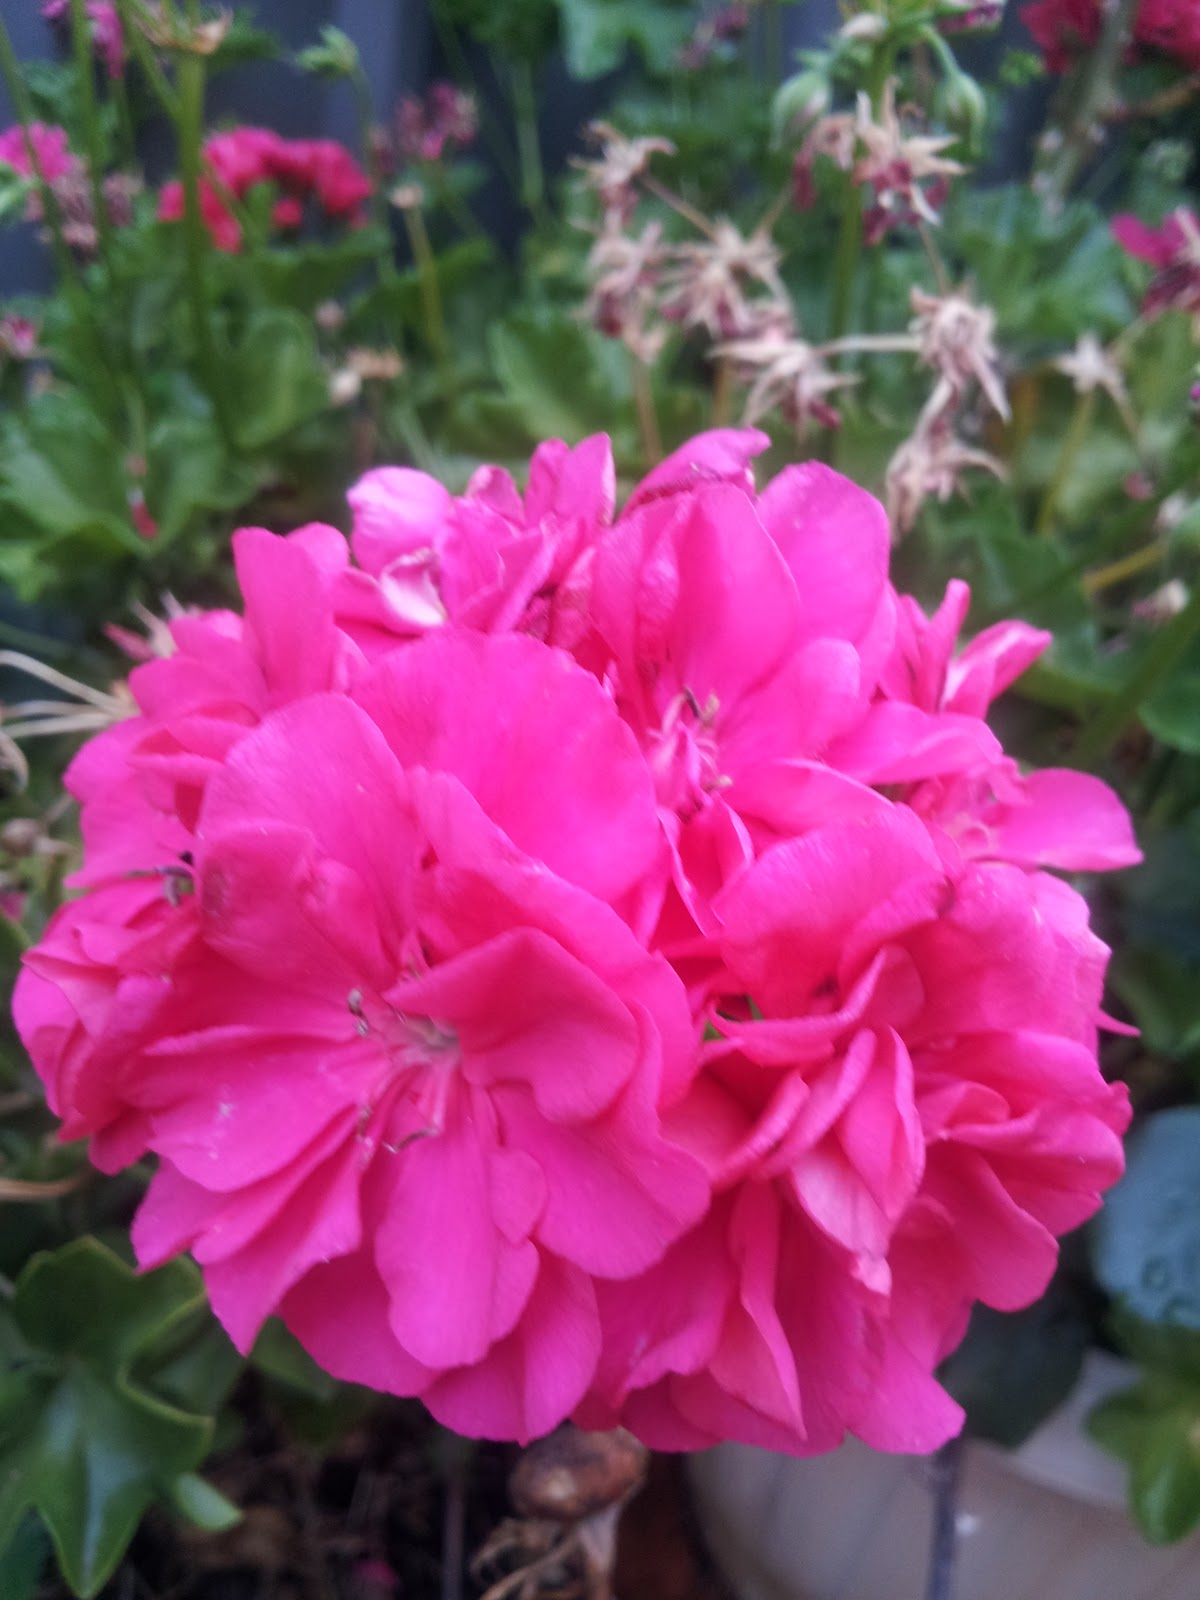 Another Type Of Flower I Found Was The Gorgeous Geranium We Have Two Types Hot Pink And Light They Make Everything Look So Much Nicer